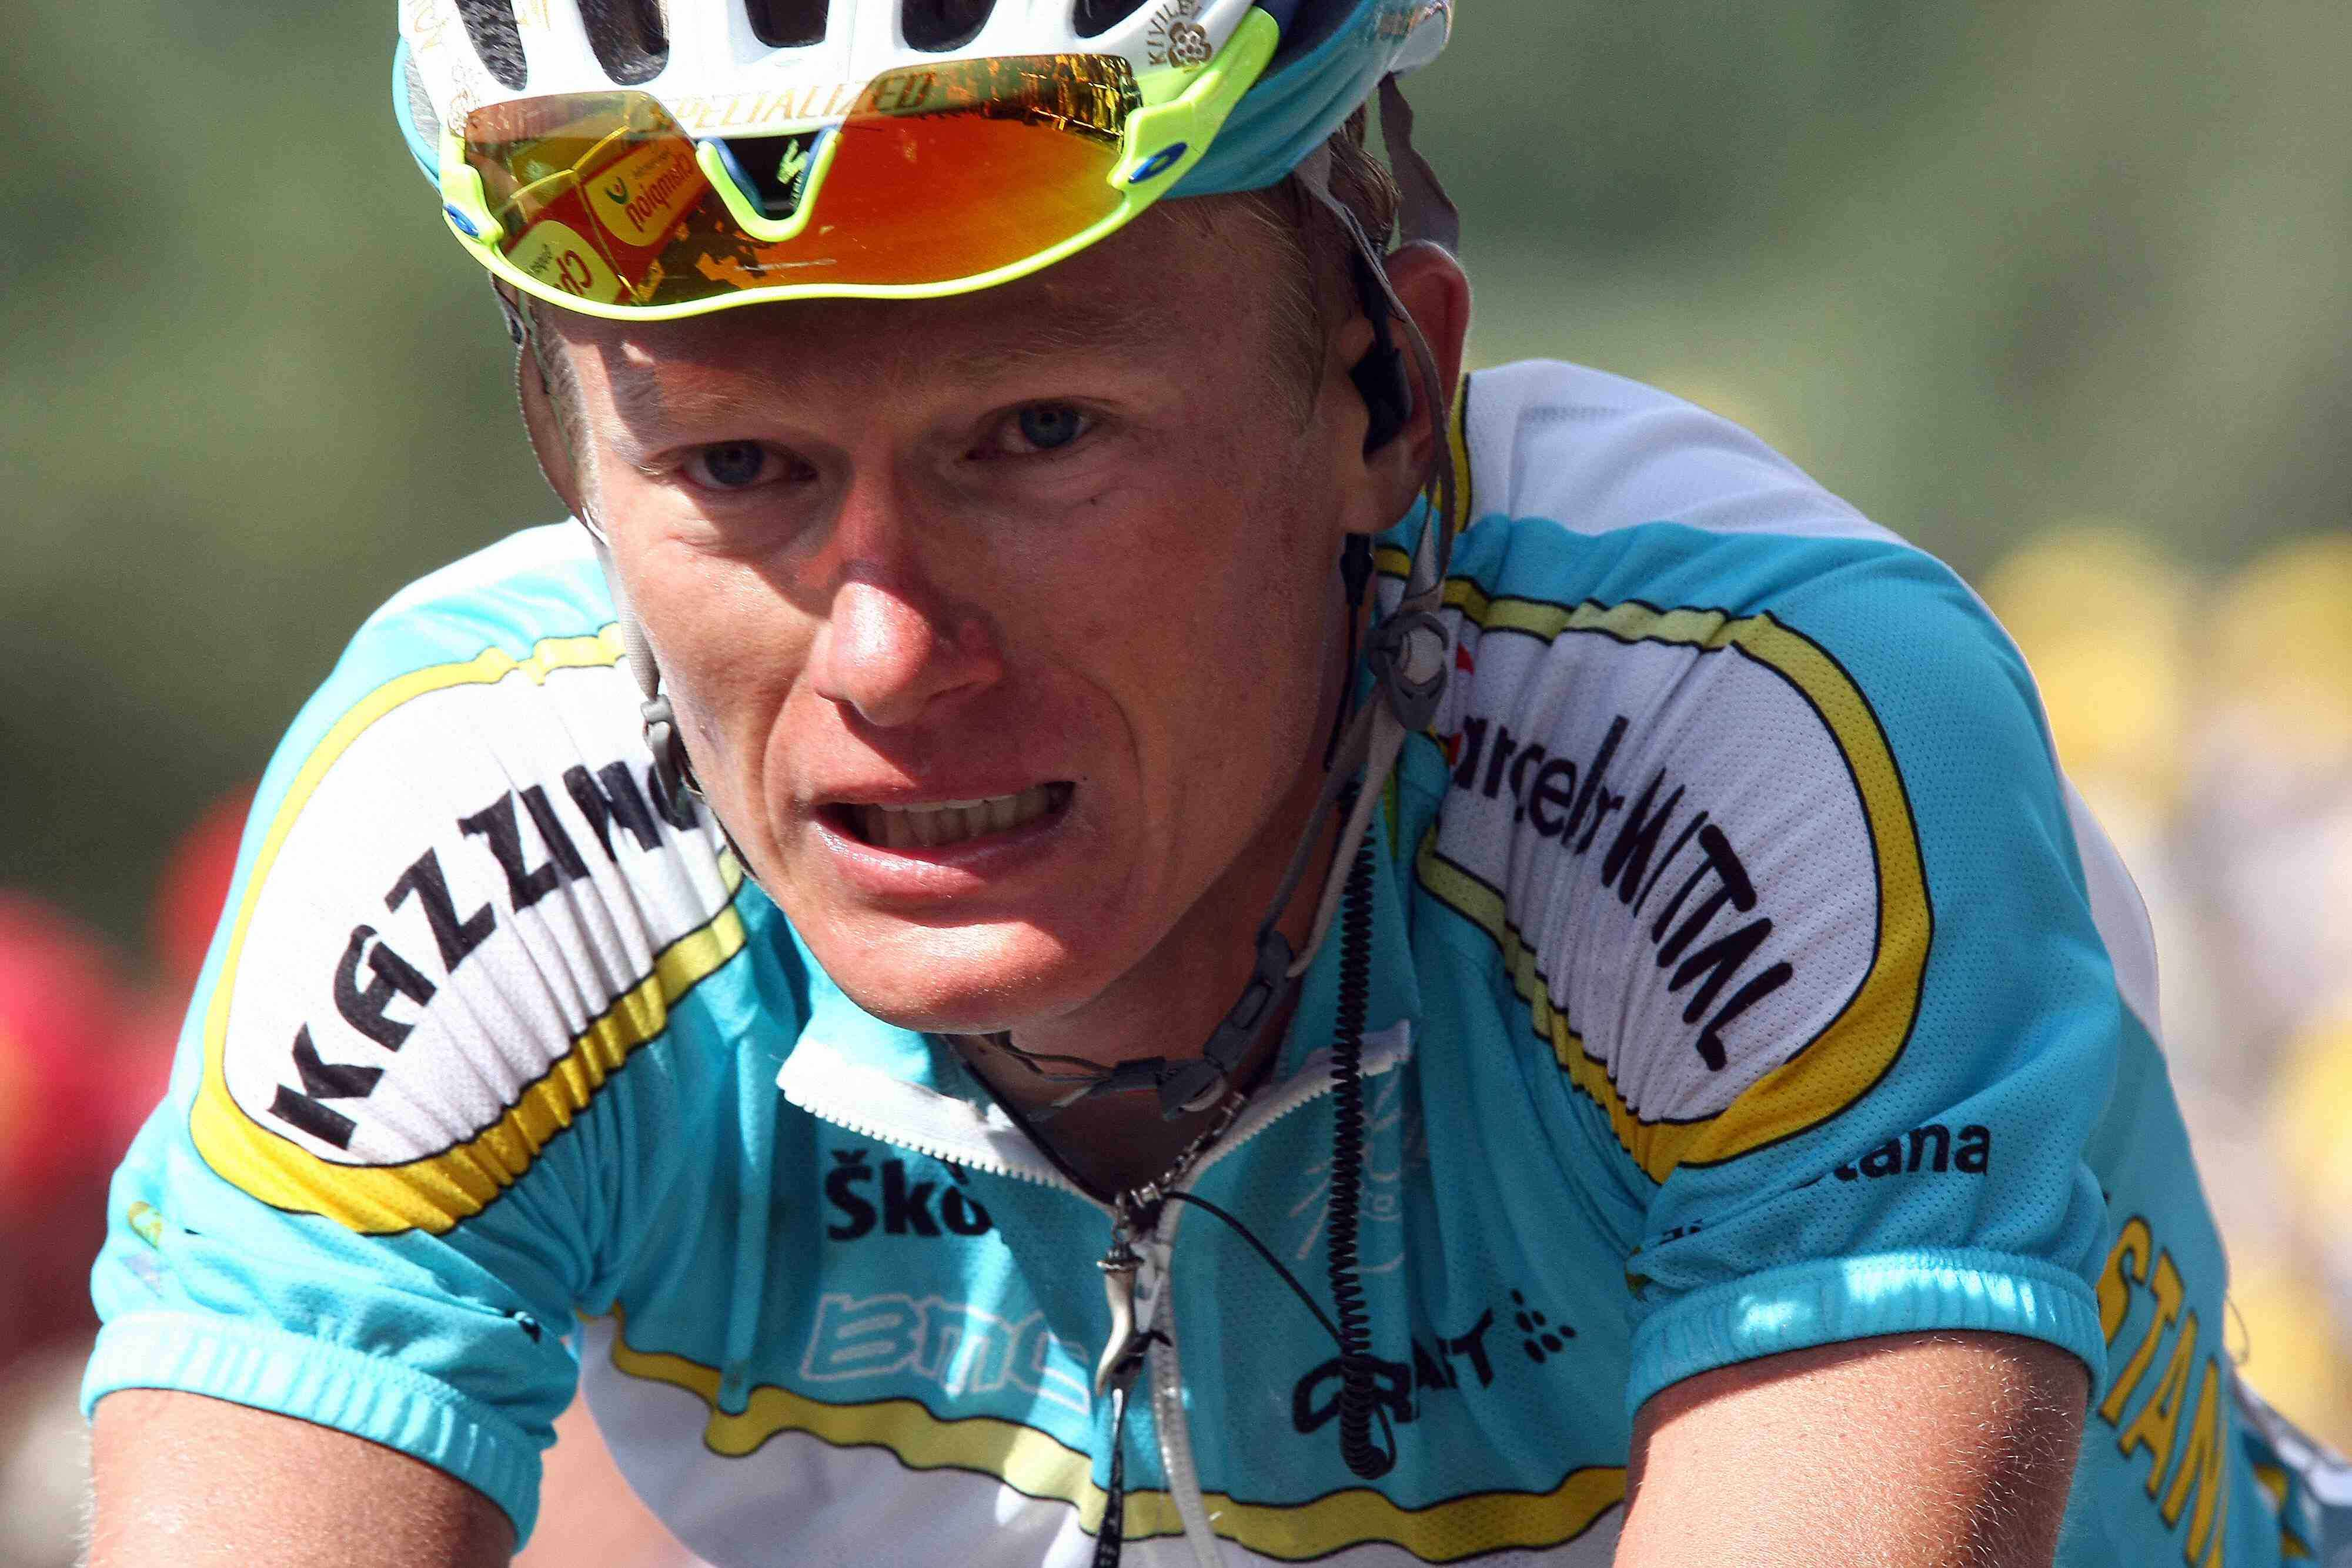 Kazakhstan pro Alexander Vinokourov racing in the 2007 Tour de France.